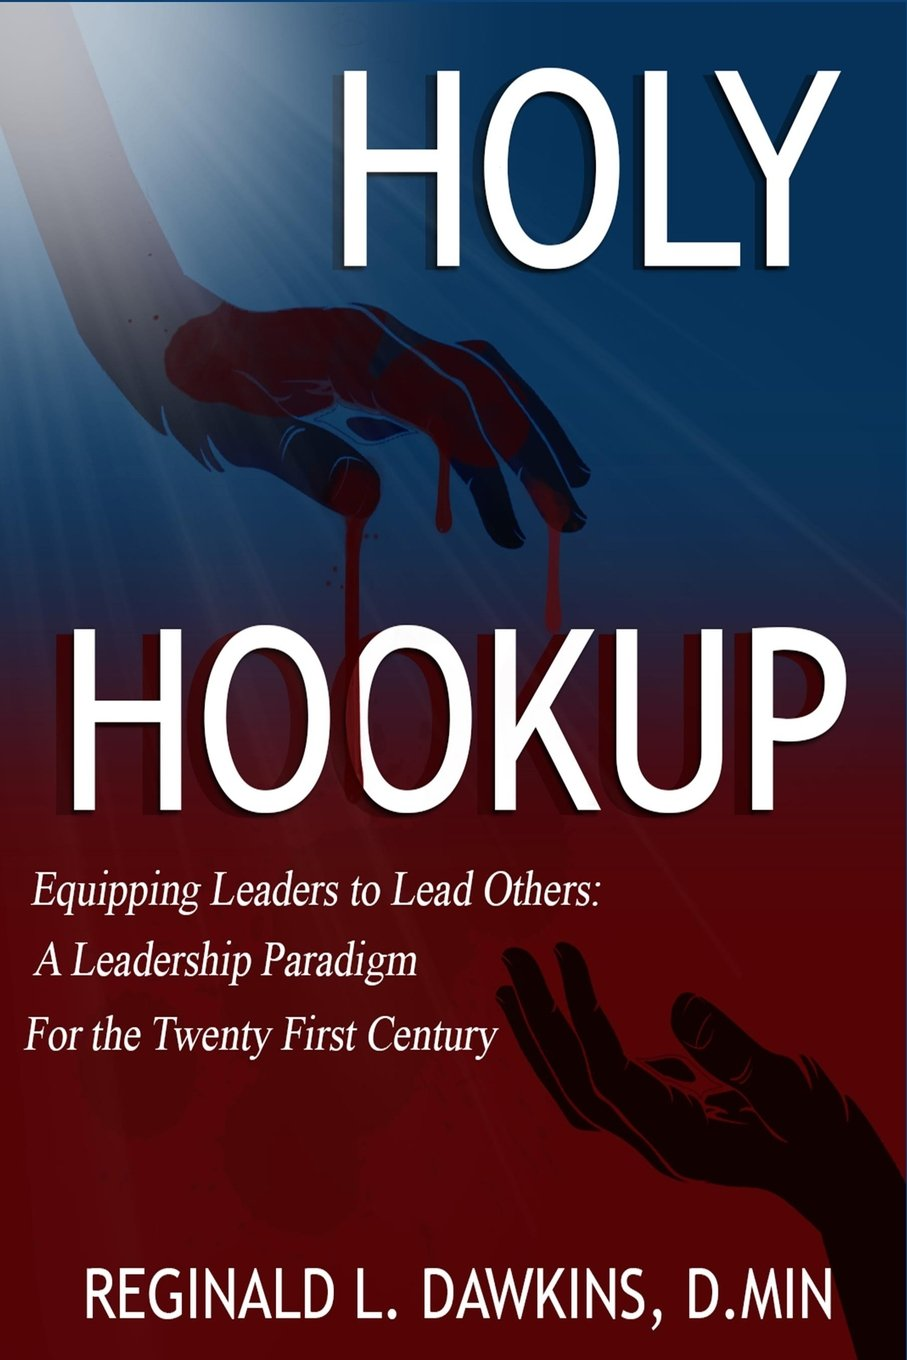 Download The Holy Hookup: Equipping Leaders to Lead Others: A Leadership Paradigm for the Twenty First Century PDF